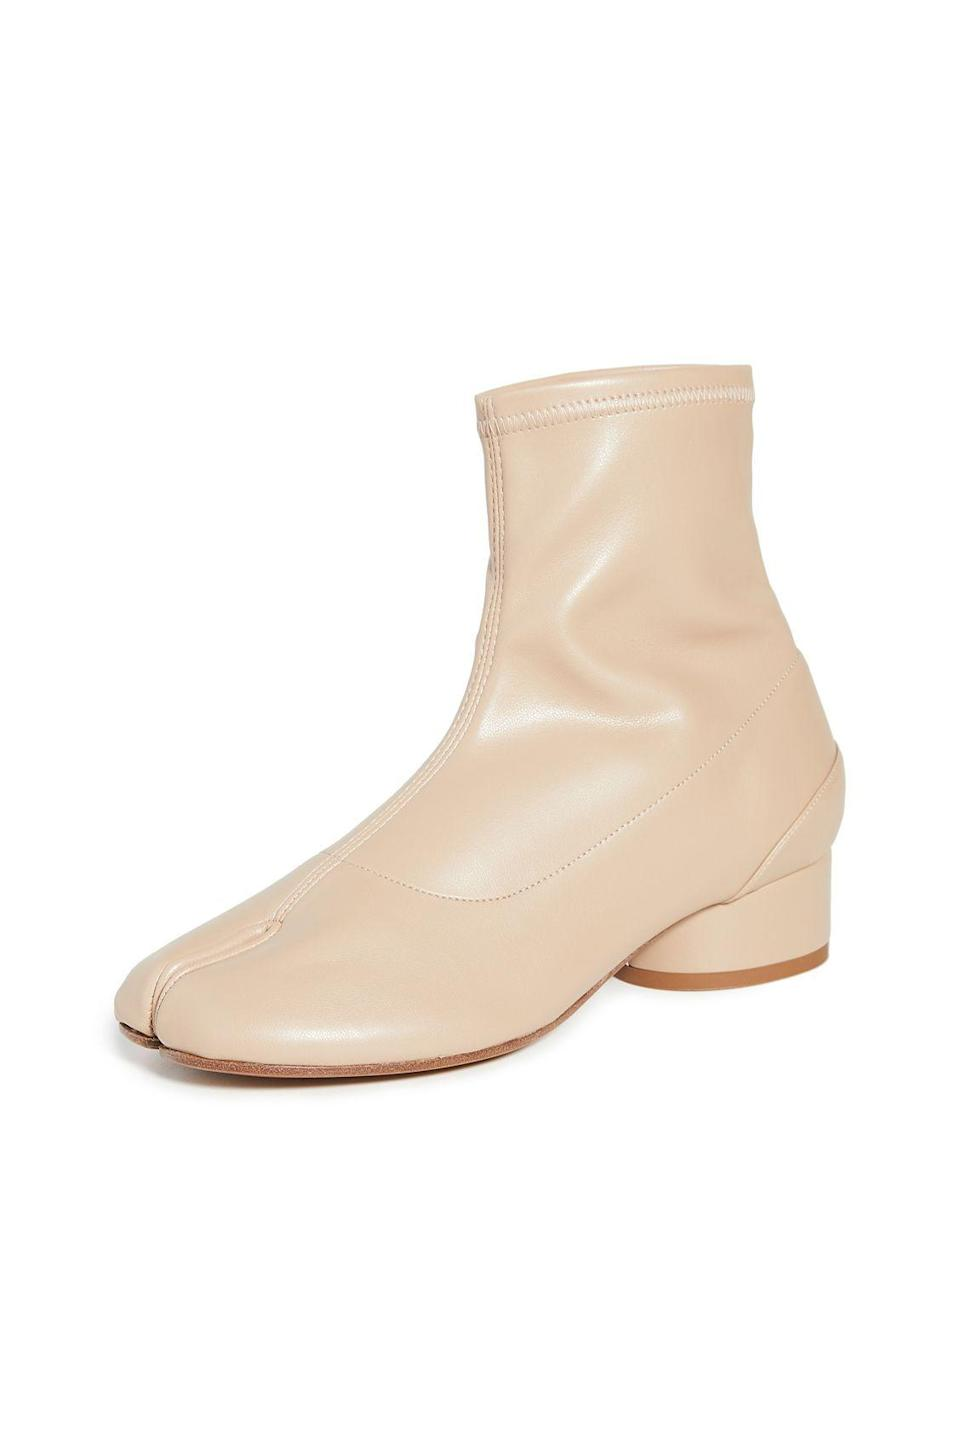 """<p><strong>Maison Margiela</strong></p><p>shopbop.com</p><p><strong>$895.00</strong></p><p><a href=""""https://go.redirectingat.com?id=74968X1596630&url=https%3A%2F%2Fwww.shopbop.com%2Ftabi-skin-bootie-maison-margiela%2Fvp%2Fv%3D1%2F1563518284.htm&sref=https%3A%2F%2Fwww.marieclaire.com%2Ffashion%2Fg33469548%2Fbest-ankle-boots-for-women%2F"""" rel=""""nofollow noopener"""" target=""""_blank"""" data-ylk=""""slk:SHOP IT"""" class=""""link rapid-noclick-resp"""">SHOP IT</a></p><p>For the ankle boot that will really draw some accolades, invest in Maison Margiela's iconic """"Tabi"""" booties. The split-toe design makes it unlike any other shoe you've ever worn.</p>"""